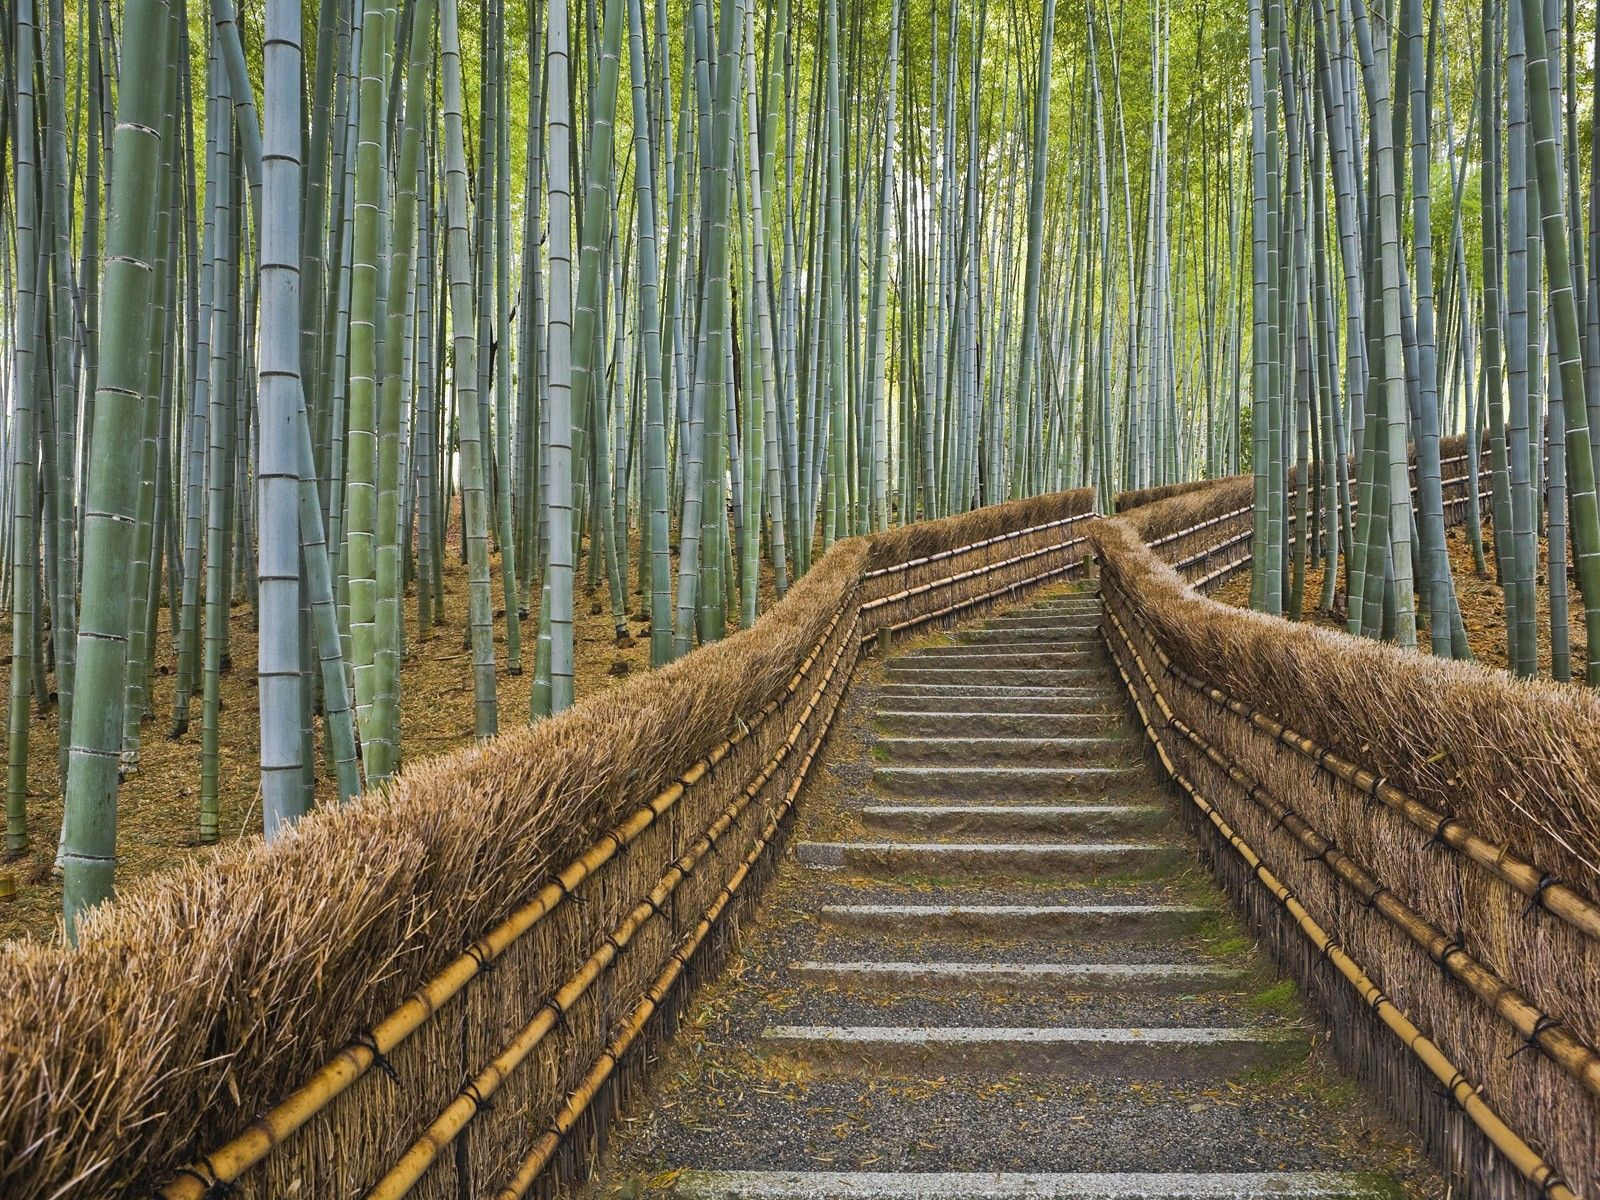 Japan nature bamboo path kyoto temple (1600x1200, nature, bamboo, path, kyoto, temple)  via www.allwallpaper.in